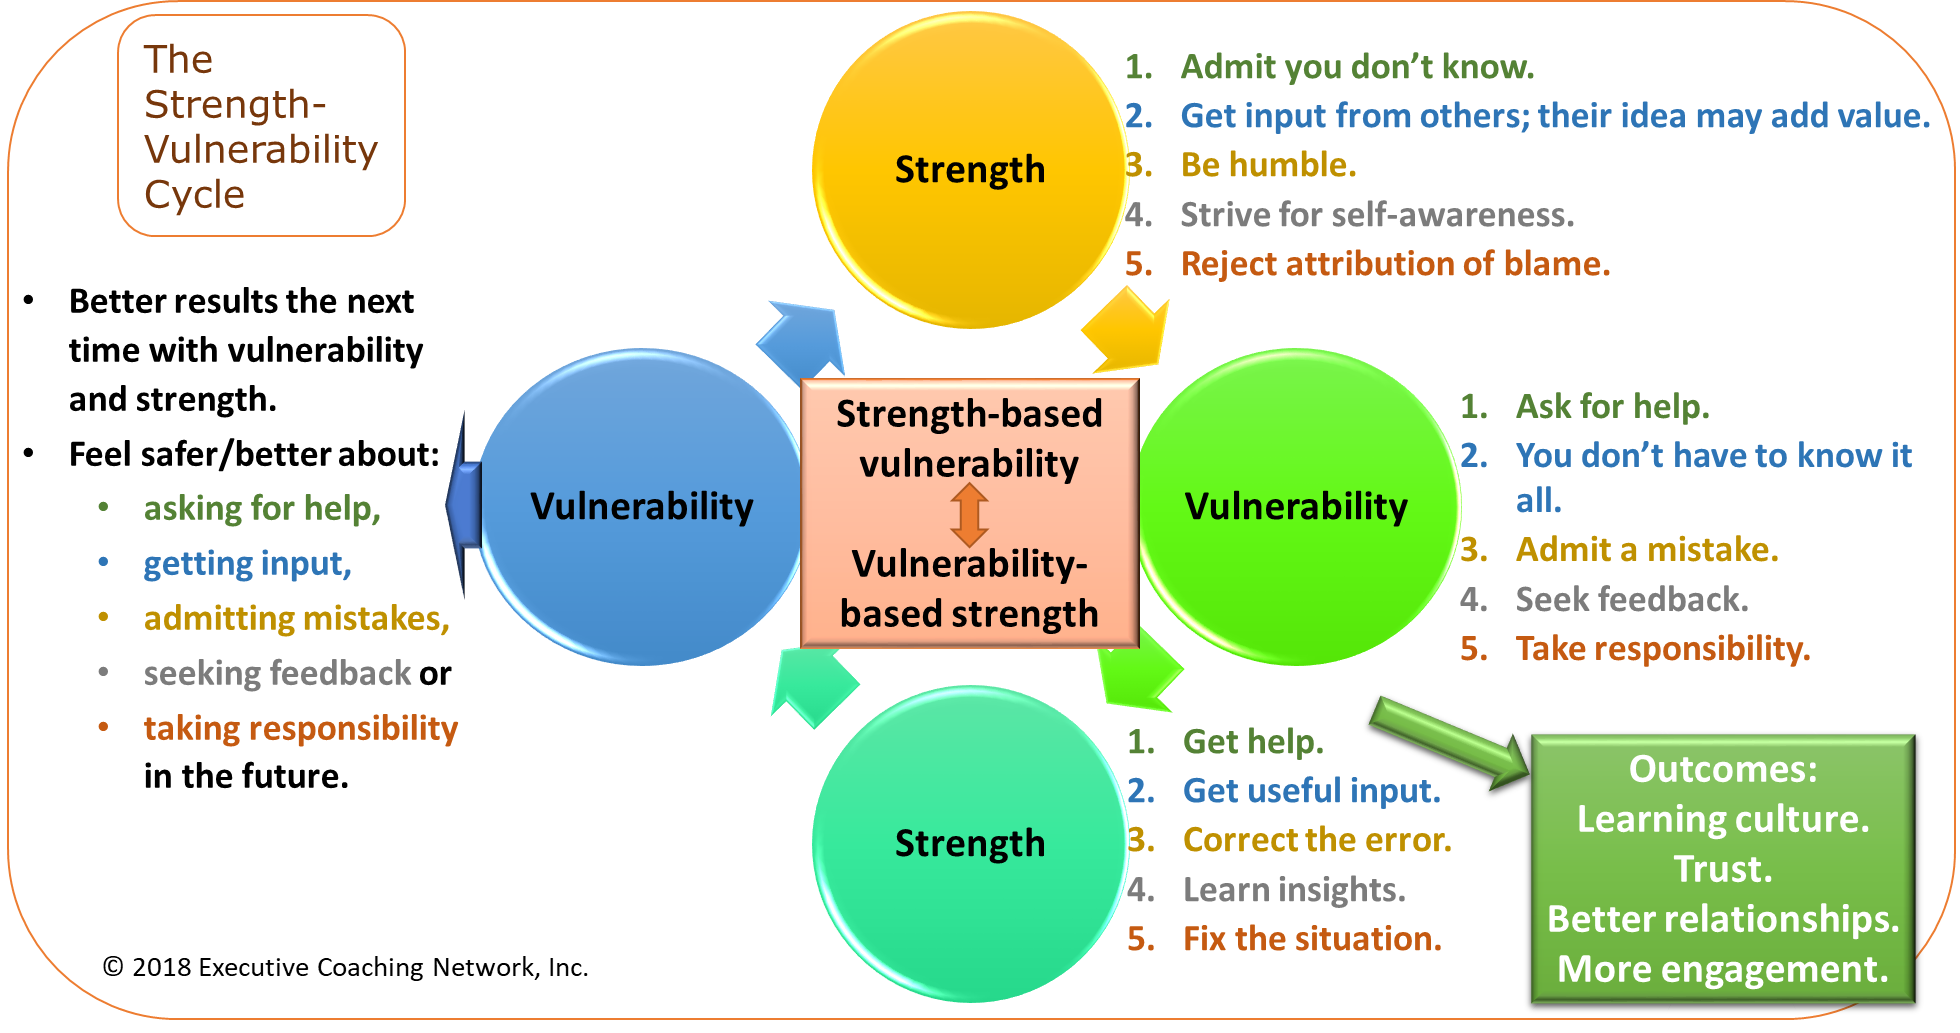 strengths based leadership How to win at strengths-based leadership when a manager decides to shift their focus from fixing weaknesses to developing strengths, three exciting things become possible, fast: individual team members get to do work they love and can naturally excel at people thrive and get amazing results.